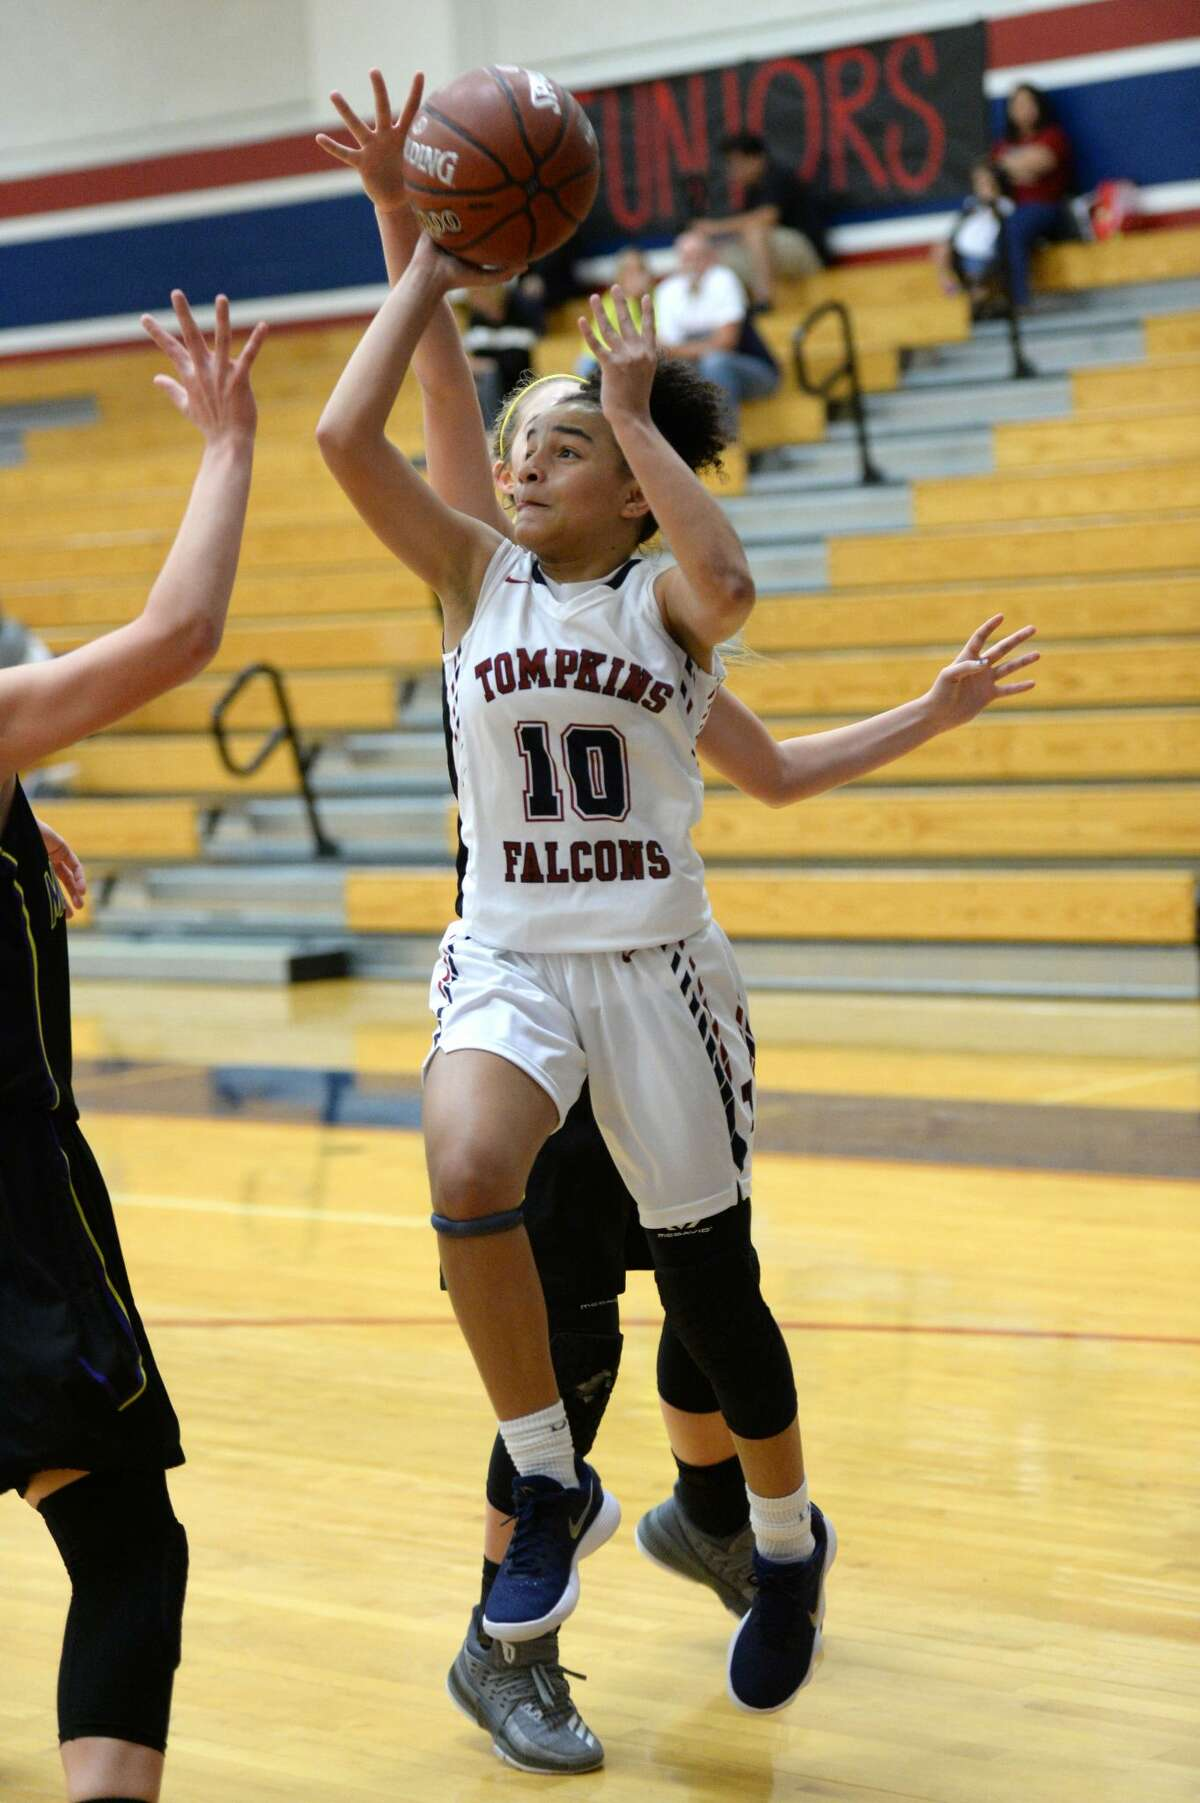 Nalani Burton (10) of Tompkins drives to the hoop during a first round game in the Phillips 66 Katy Classic between the Tompkins Falcons and the Montgomery Bears on Thursday November 30, 2017 at Tompkins HS, Katy, TX.